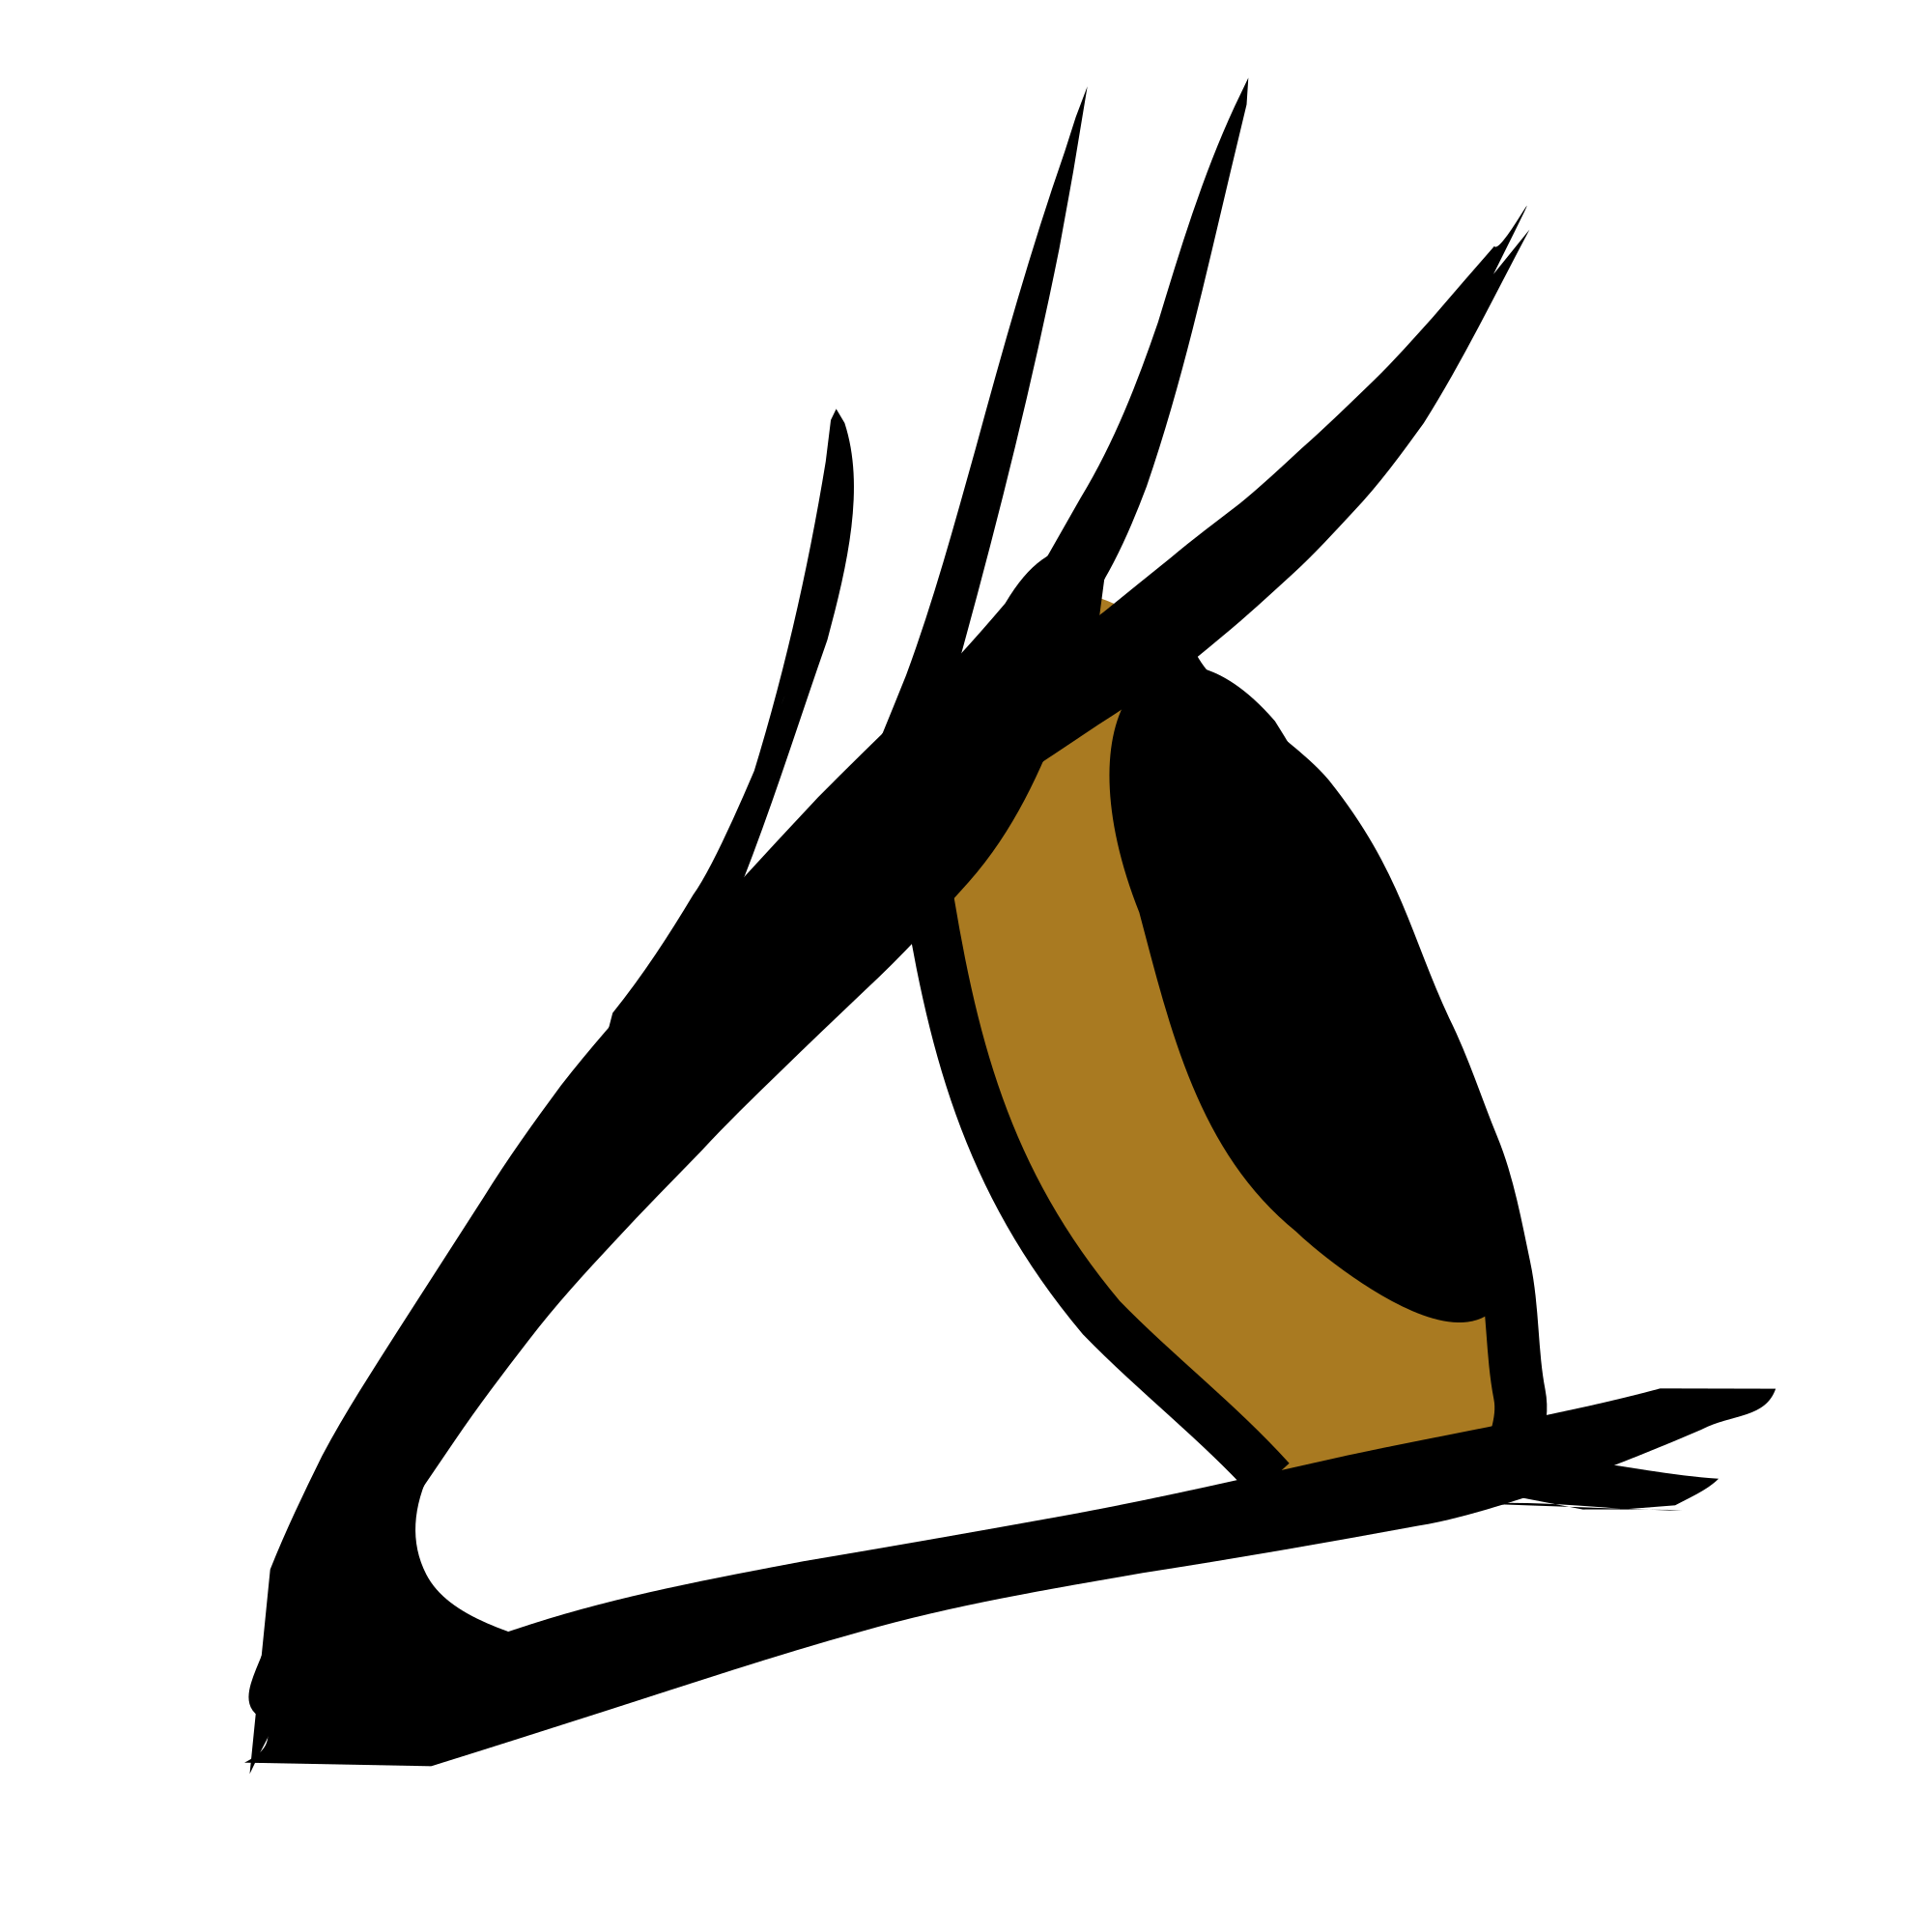 File detector svg wikimedia. Eye clipart side view